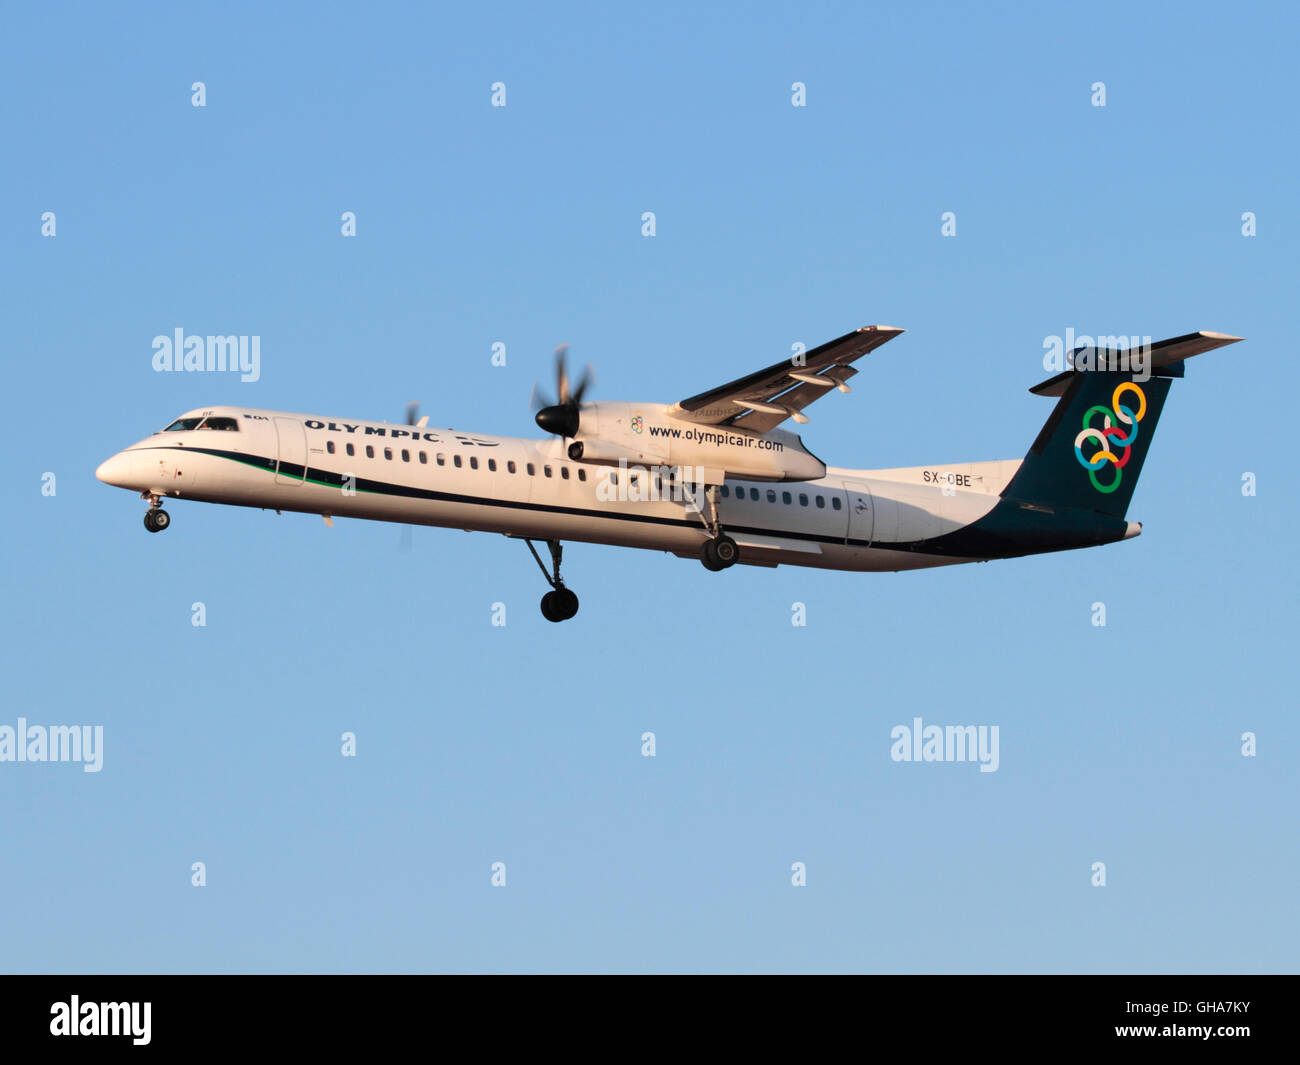 Olympic Air Bombardier Dash 8-Q400 turboprop regional airliner on approach at sunset - Stock Image